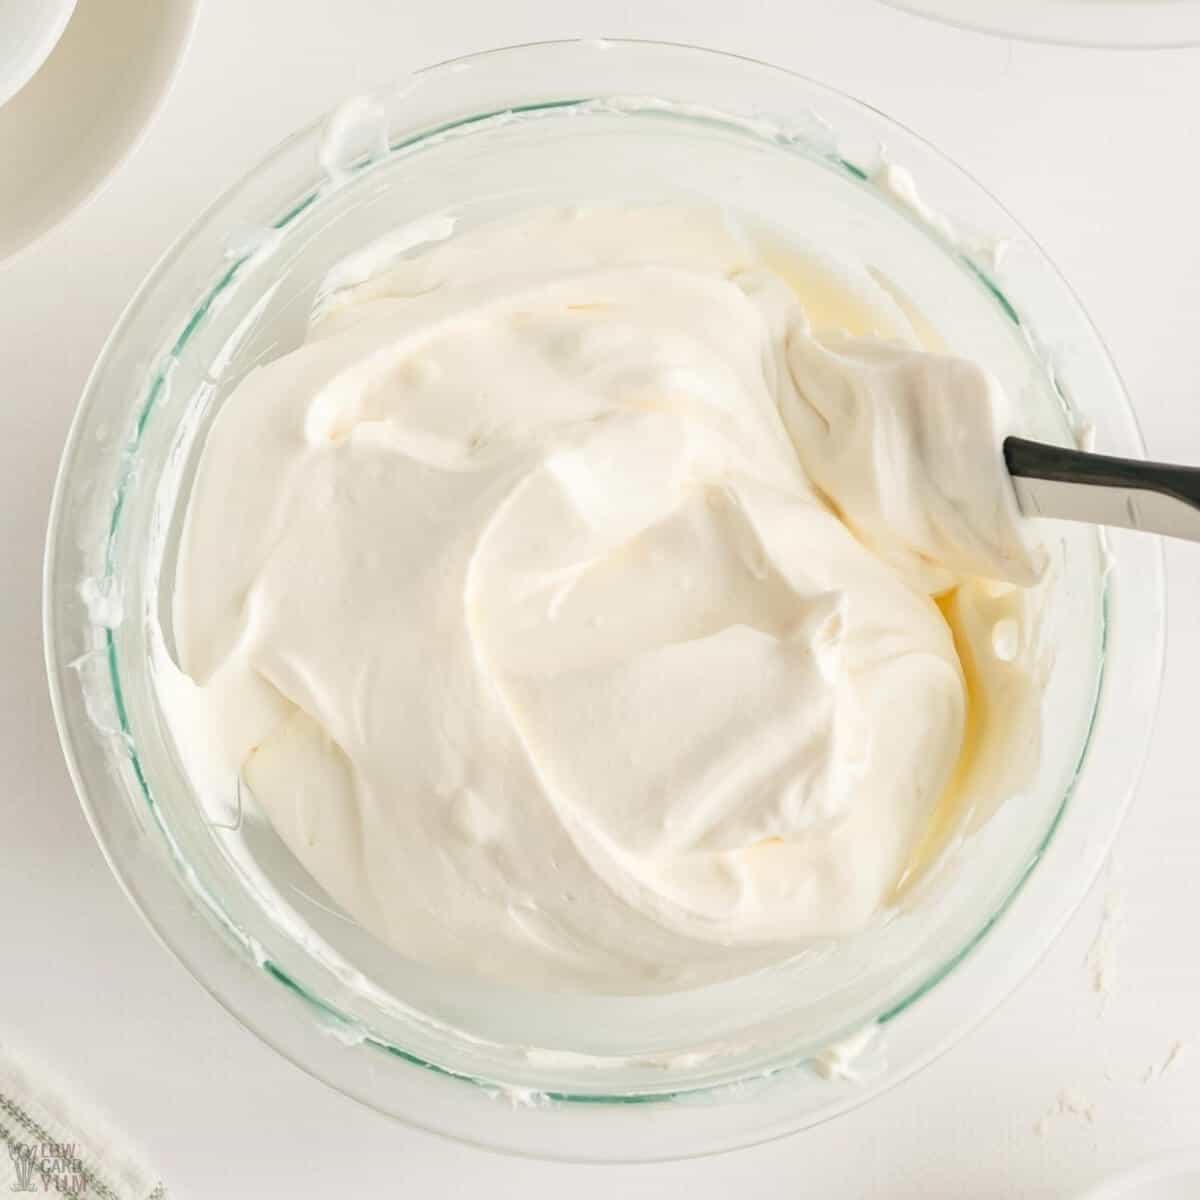 folding in whipped cream for filling